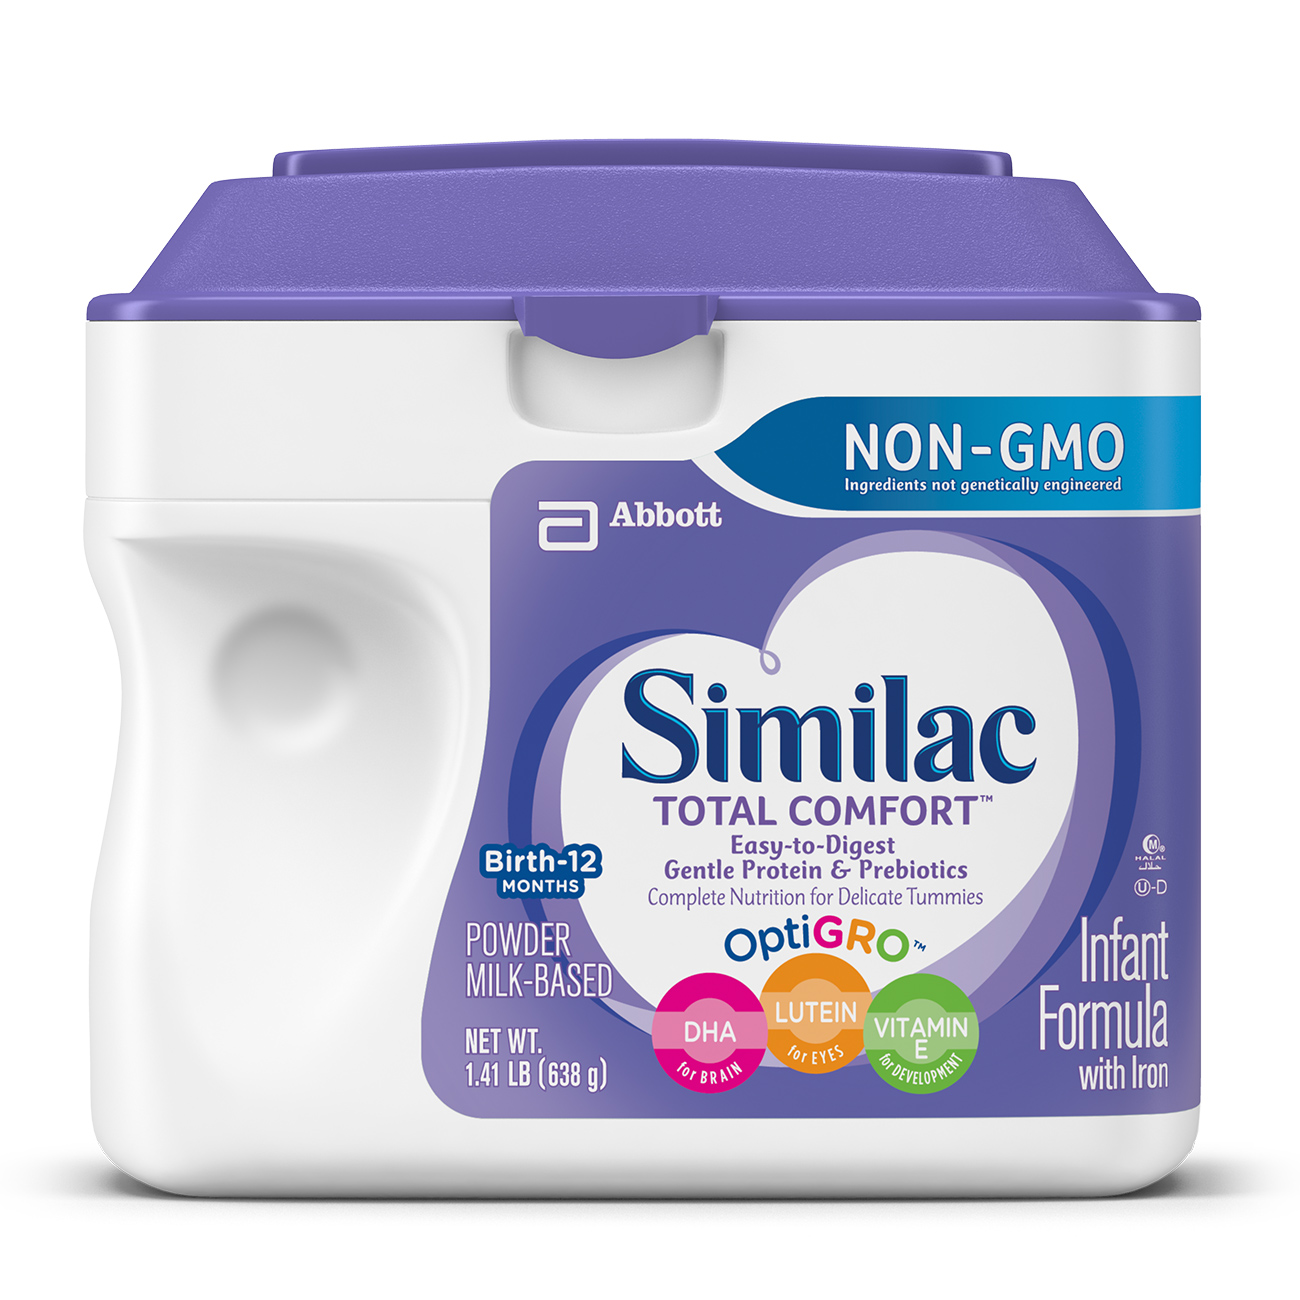 Similac Total Comfort NON-GMO Infant Formula with Iron, Powder, 1.41 lb